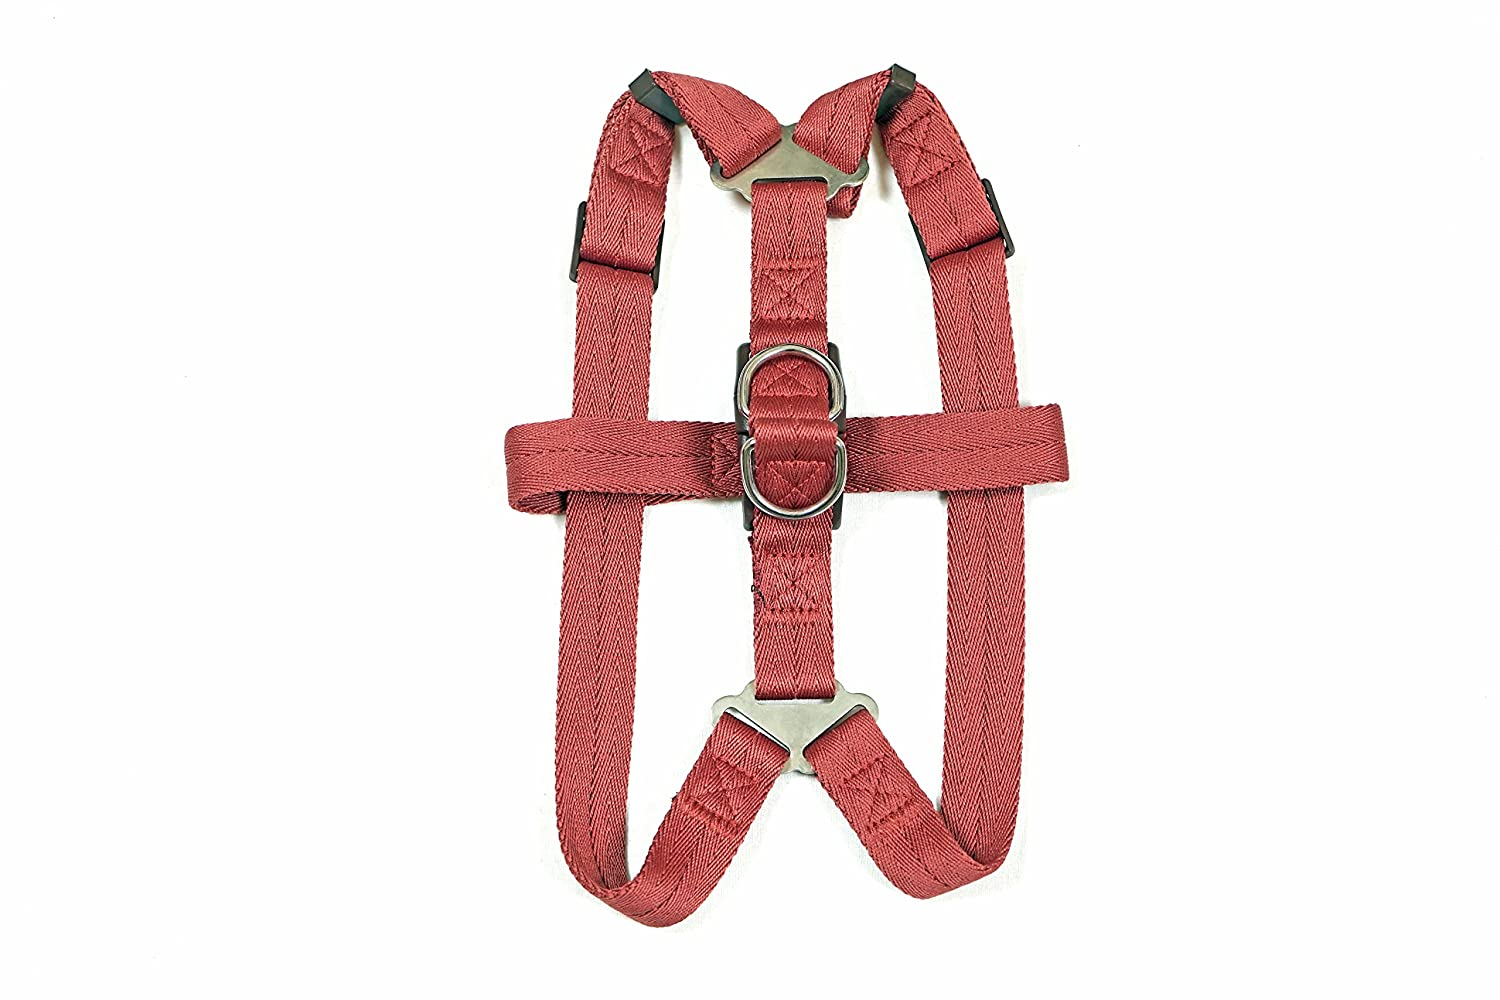 fe562fef7 Amazon.com   HQ Sport Dogs and Cat Harness Outdoor Nylon Leashes ...